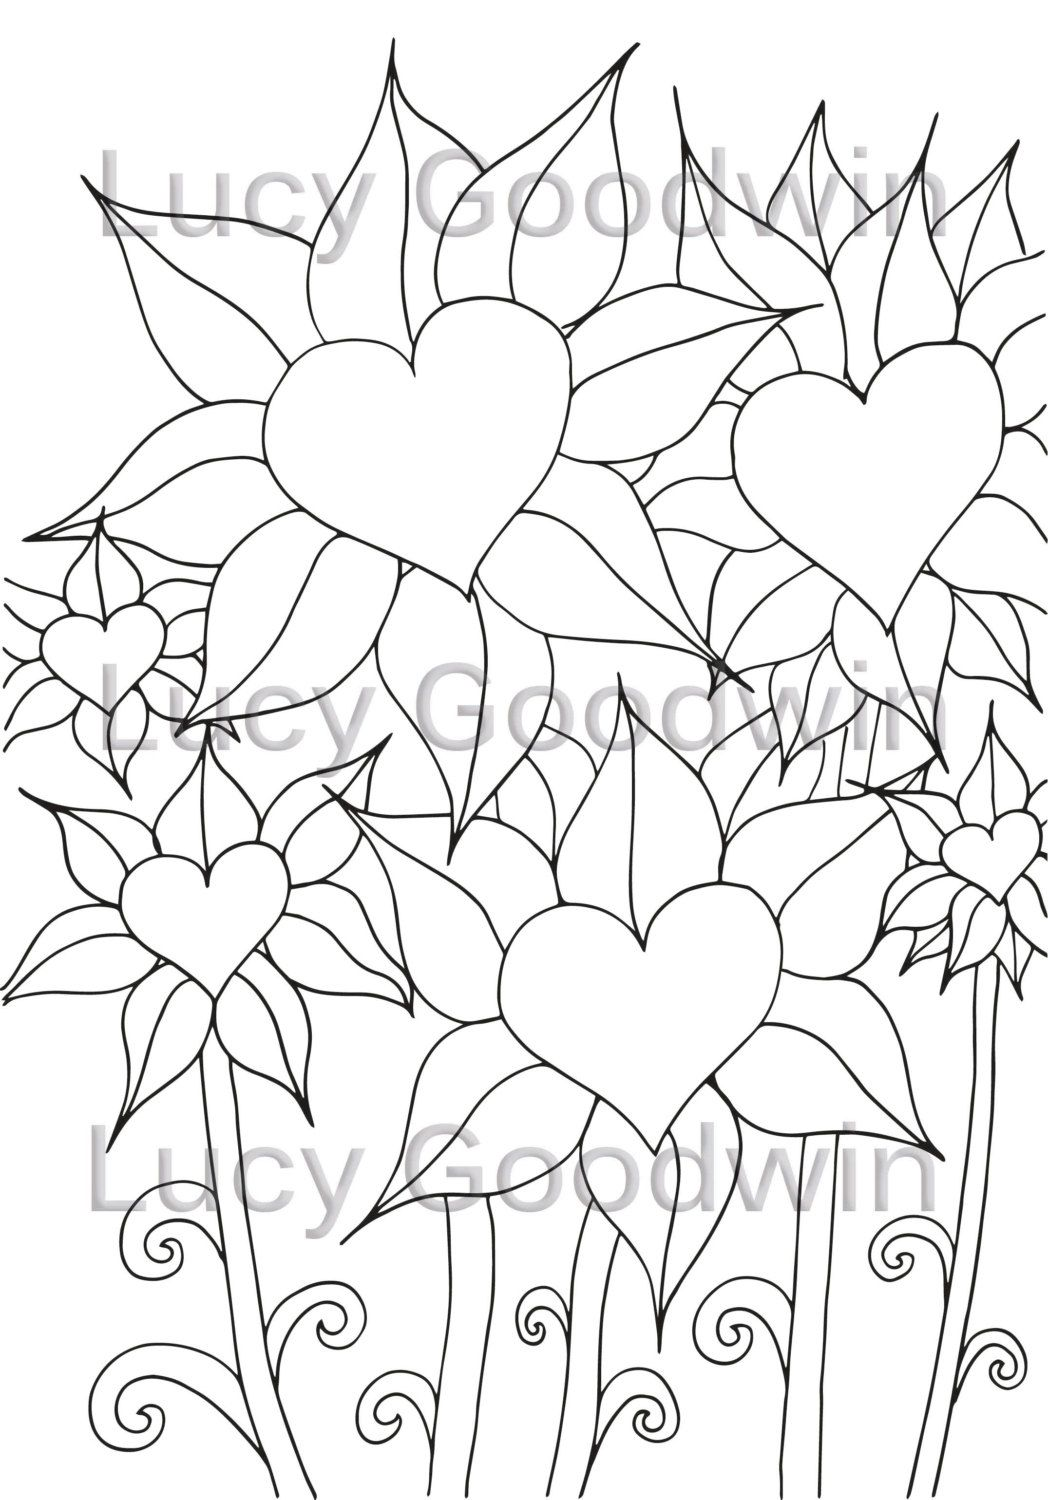 Love Heart Flower Colouring Page By Lucygoodwindesign On Etsy